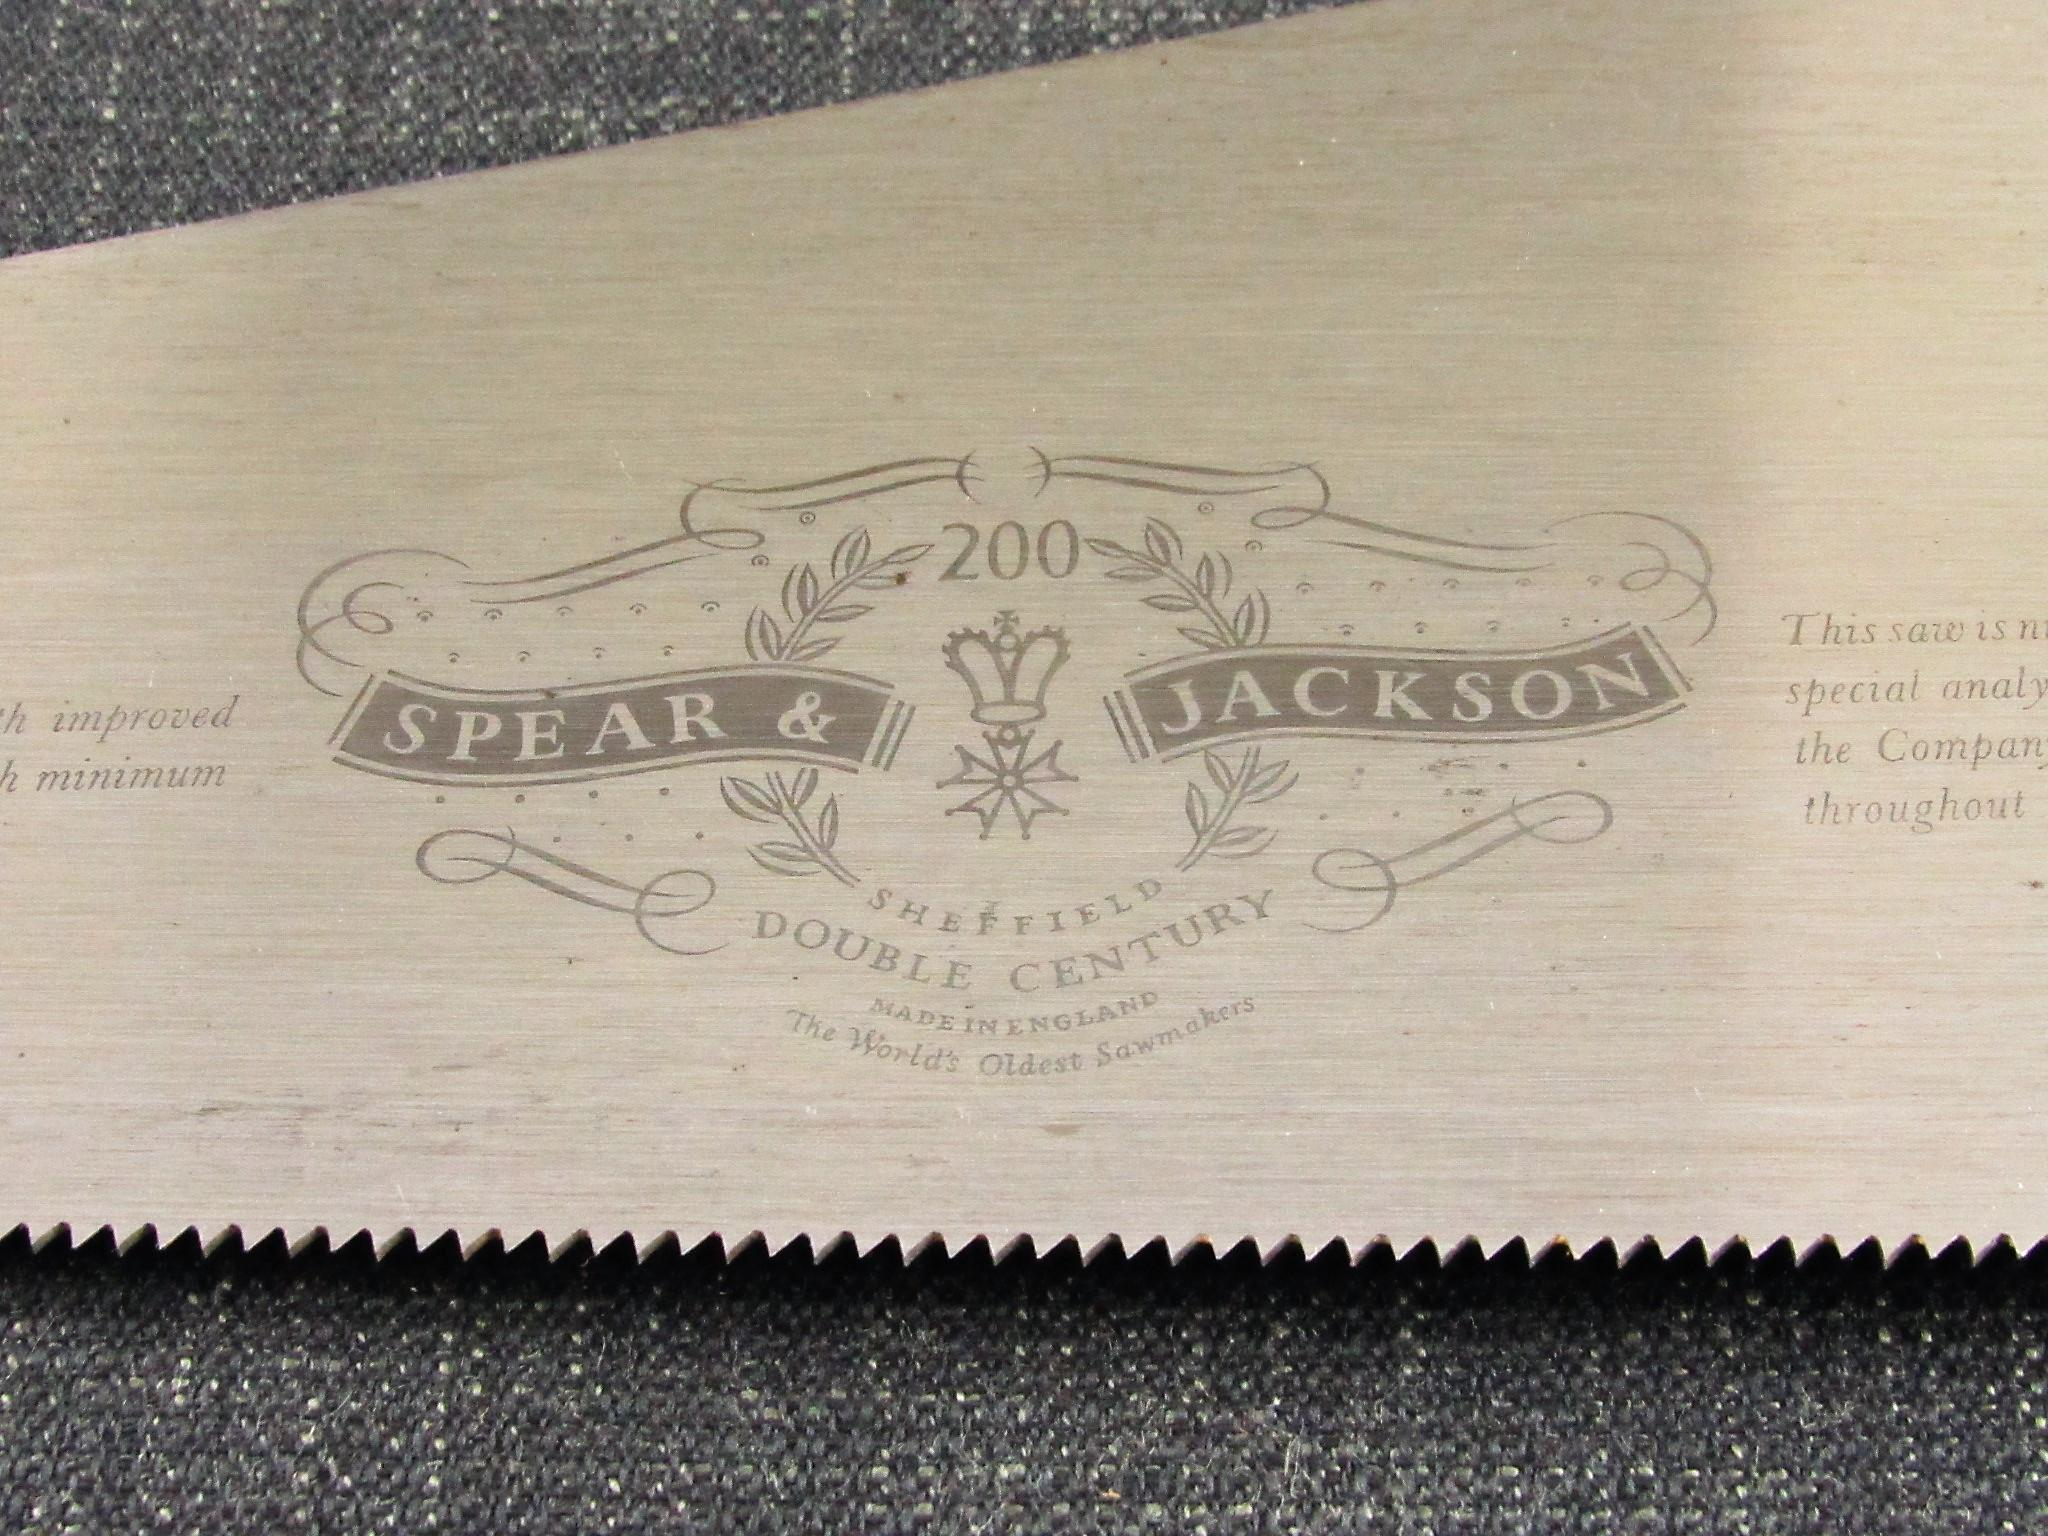 Cross Cut SPEAR & JACKSON Double Century Panel Saw